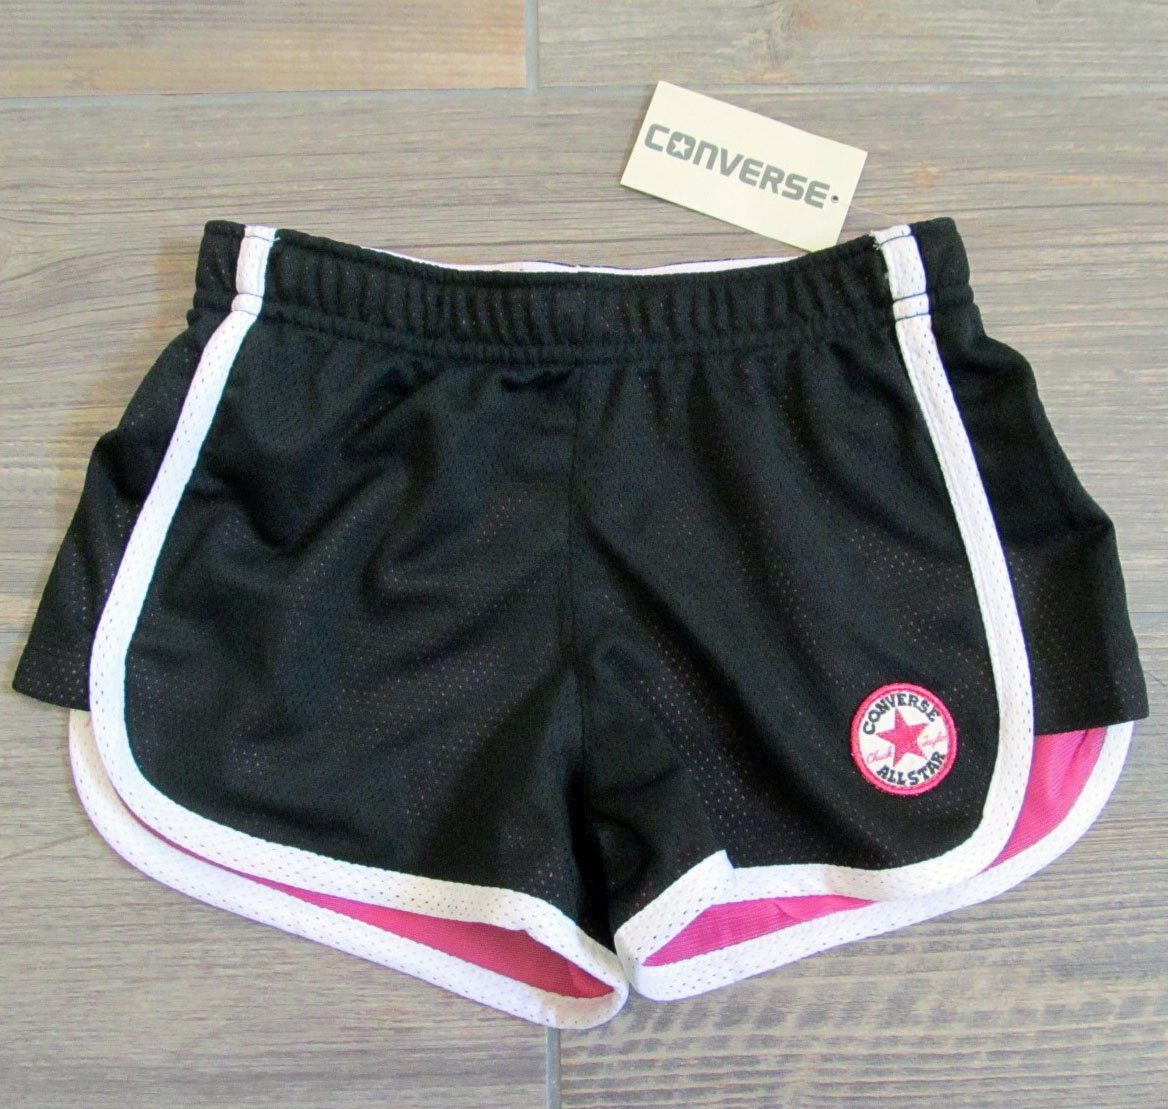 Converse Girls 6 Black Gym Shorts with Fold Over Waistband Athletic Mesh New